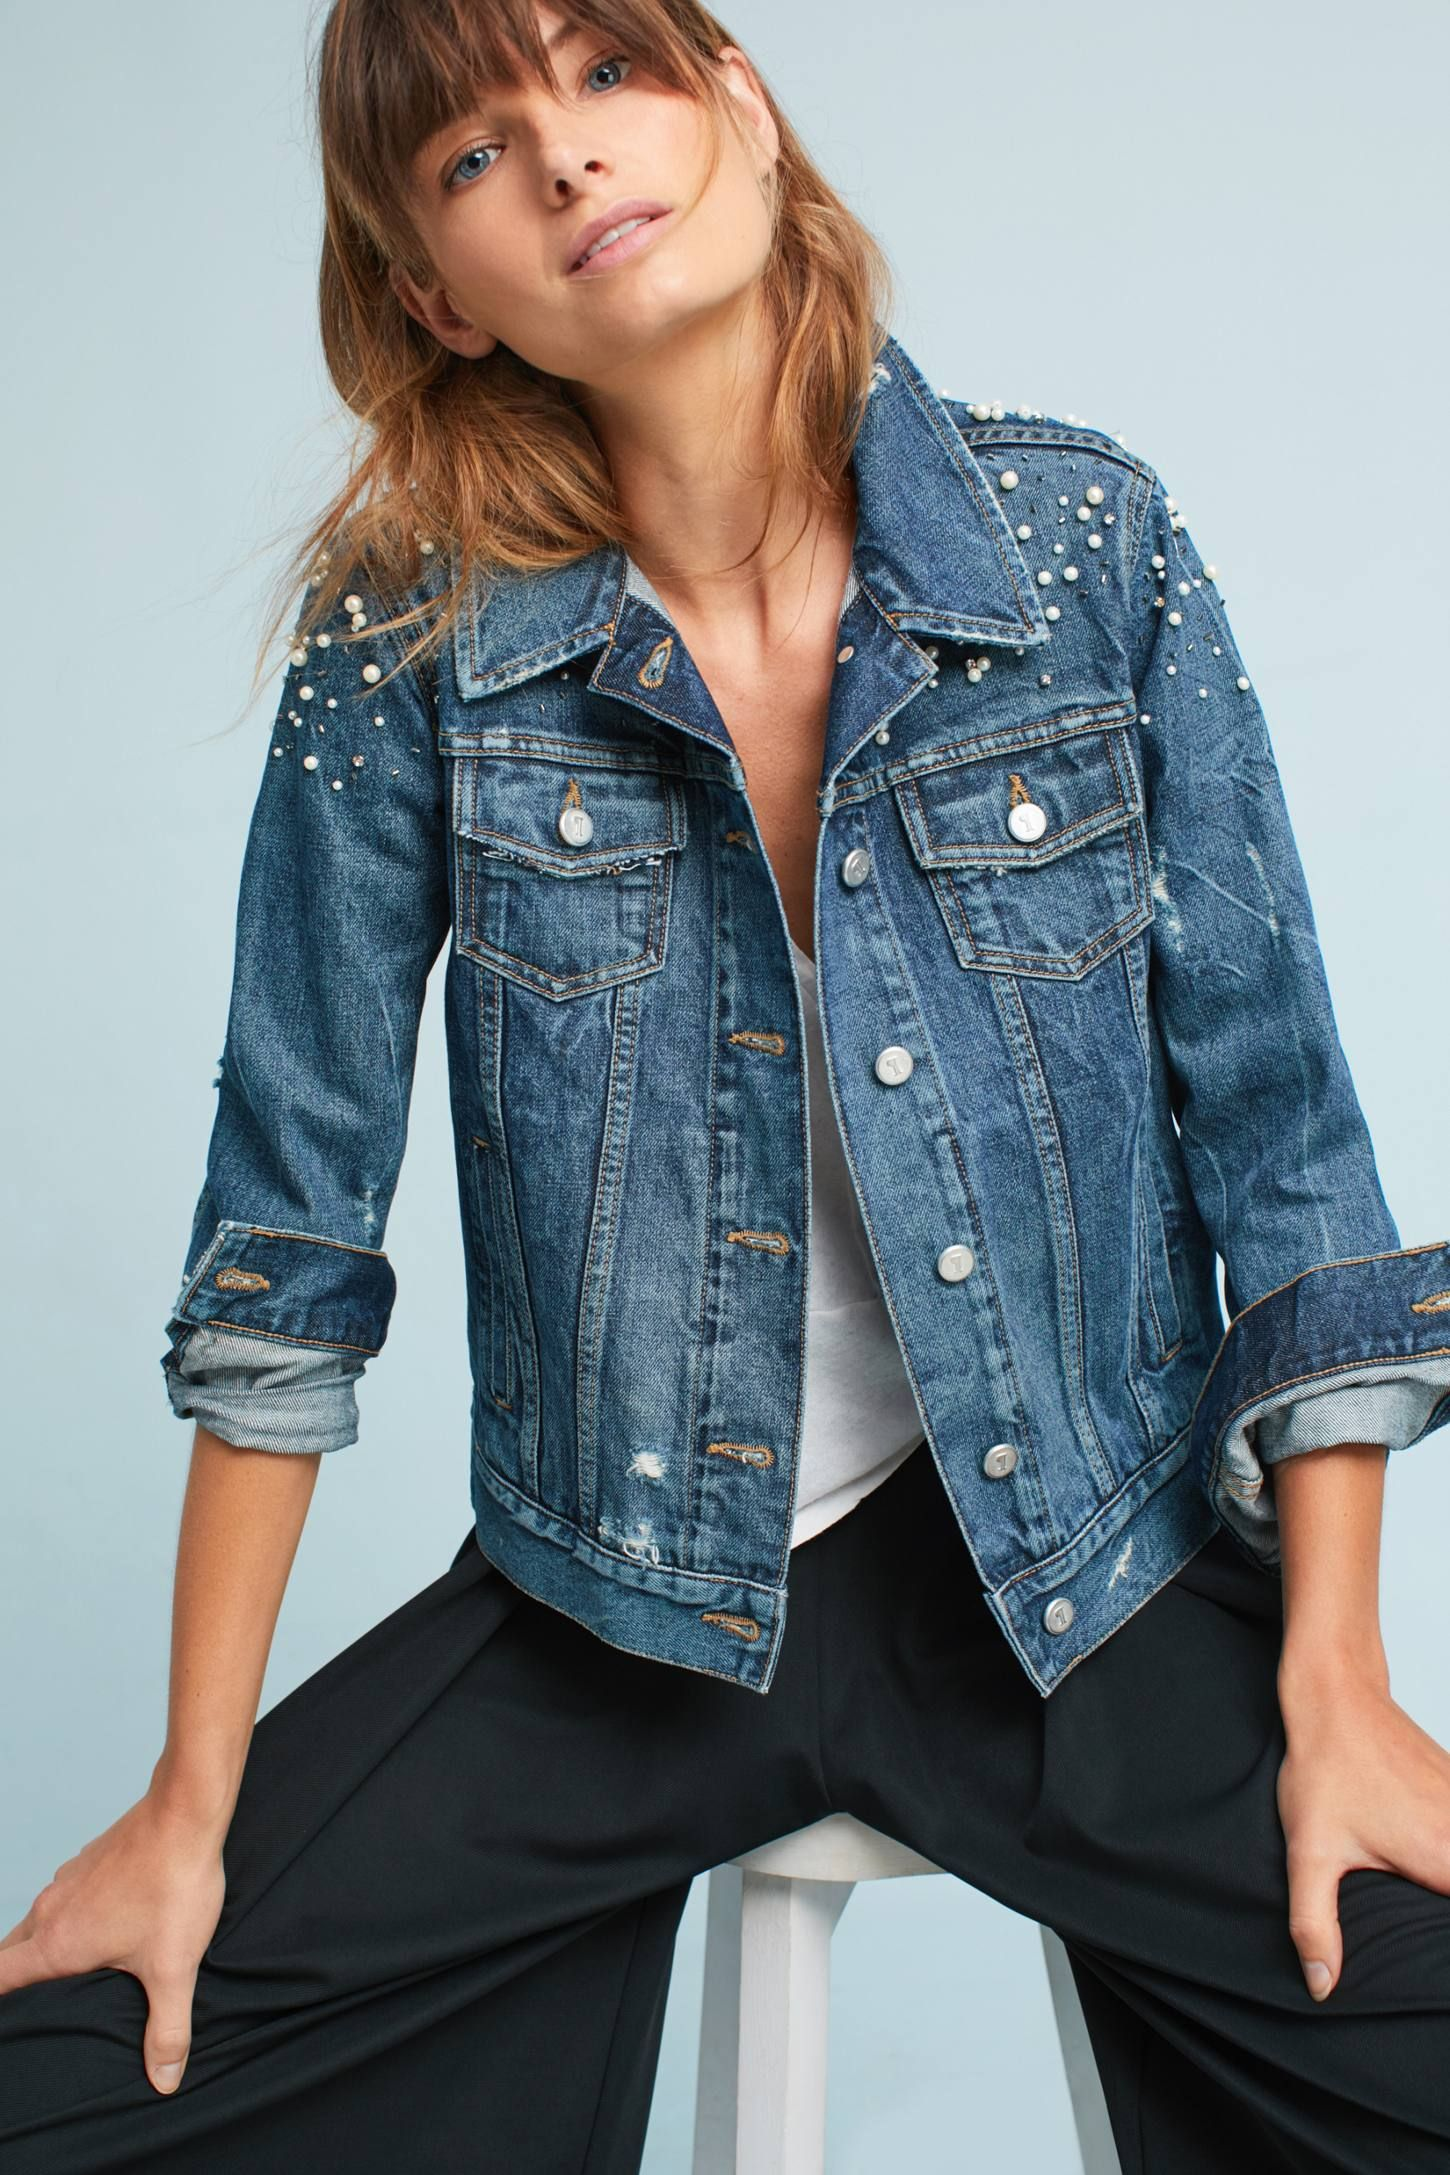 Slide View: 3: Pearled Denim Trucker Jacket